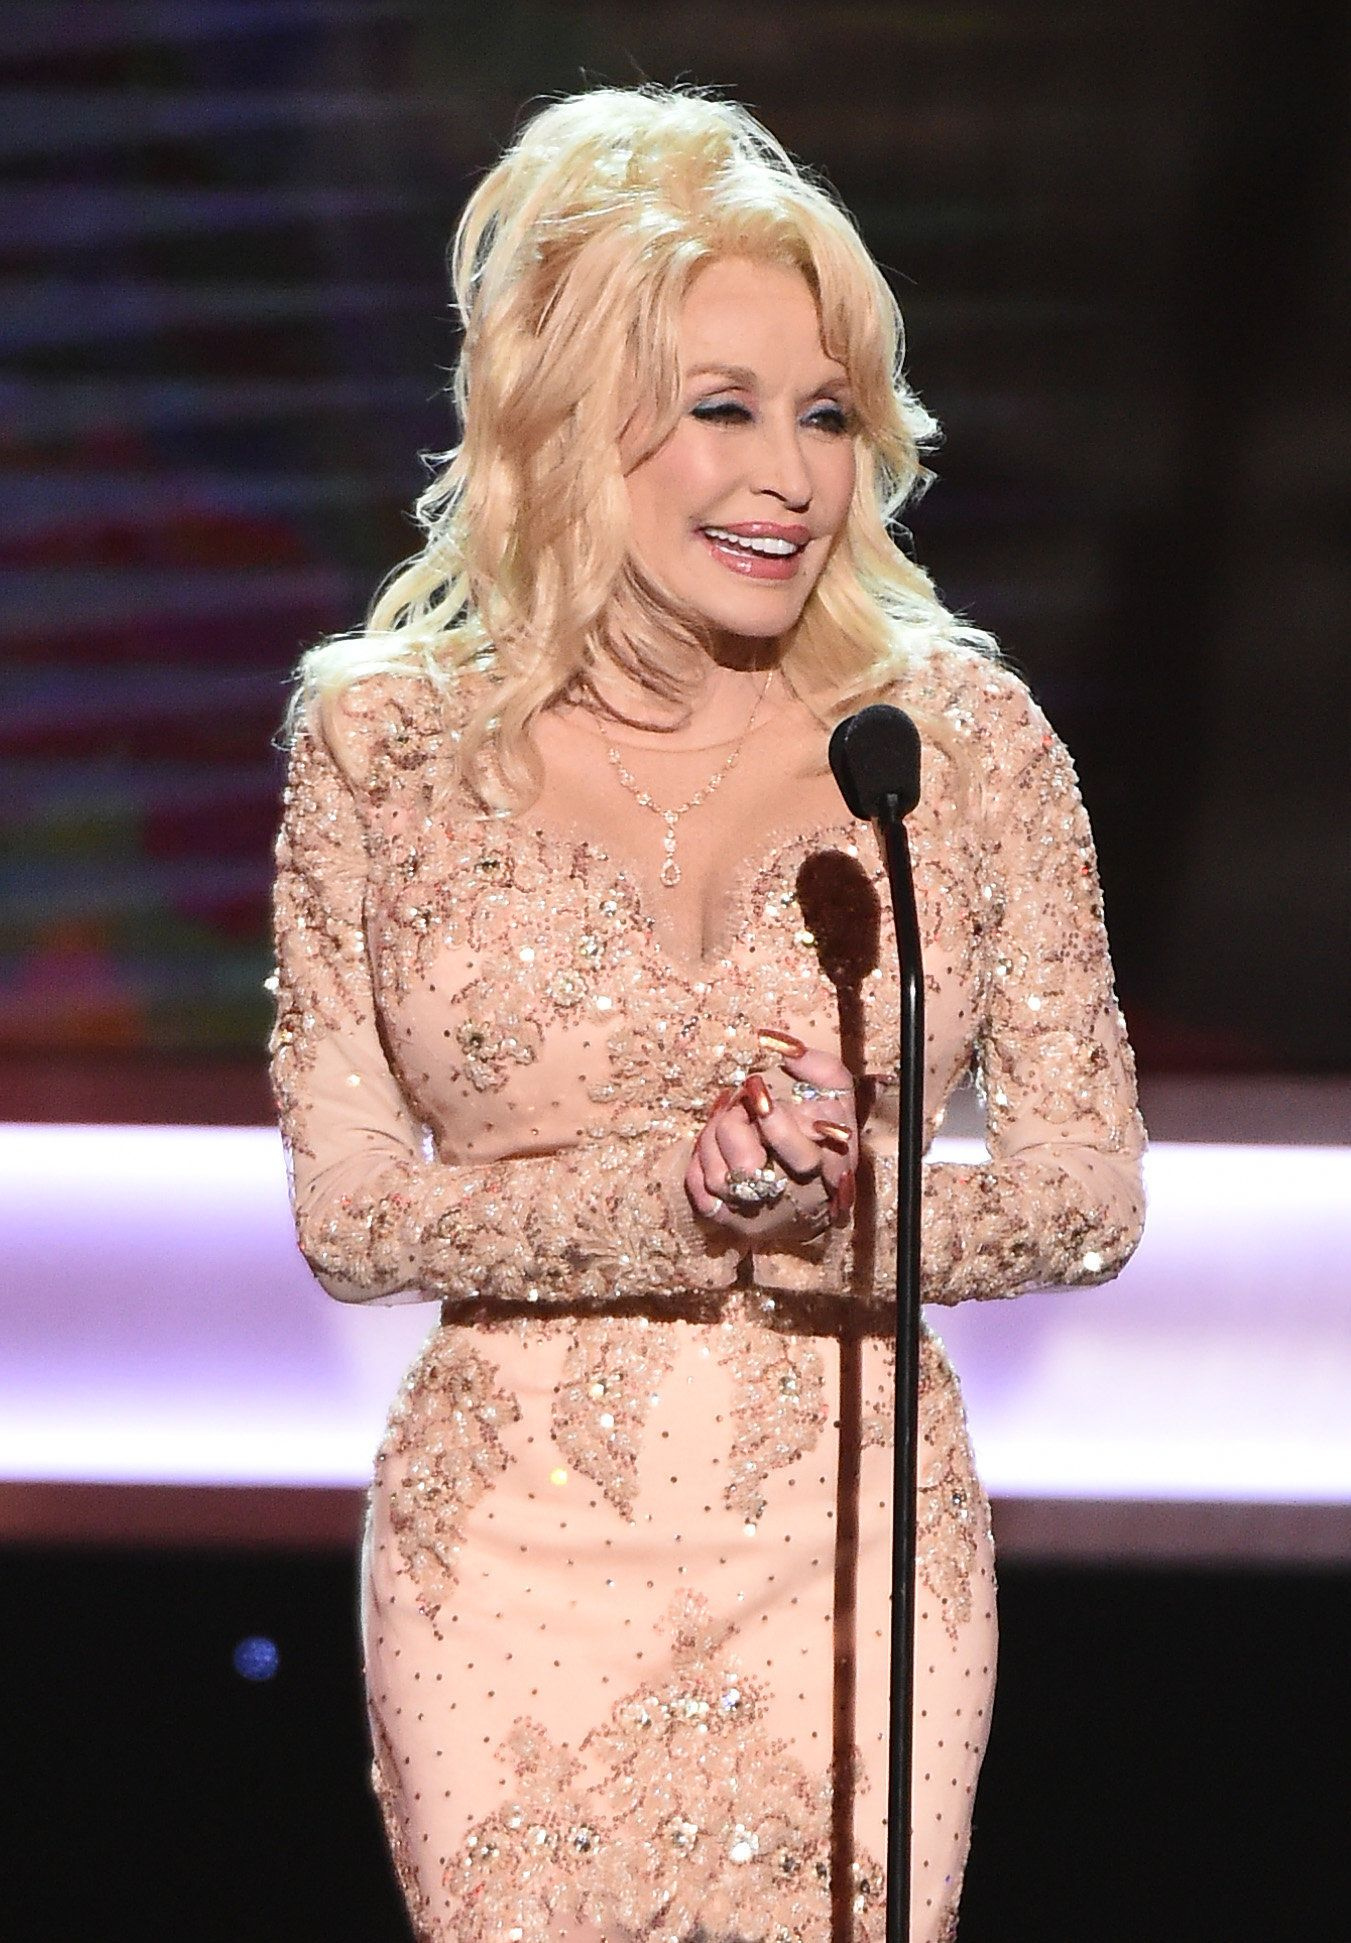 Dolly Parton Teams Up With Netflix For New Show Inspired By Her Classic Hits